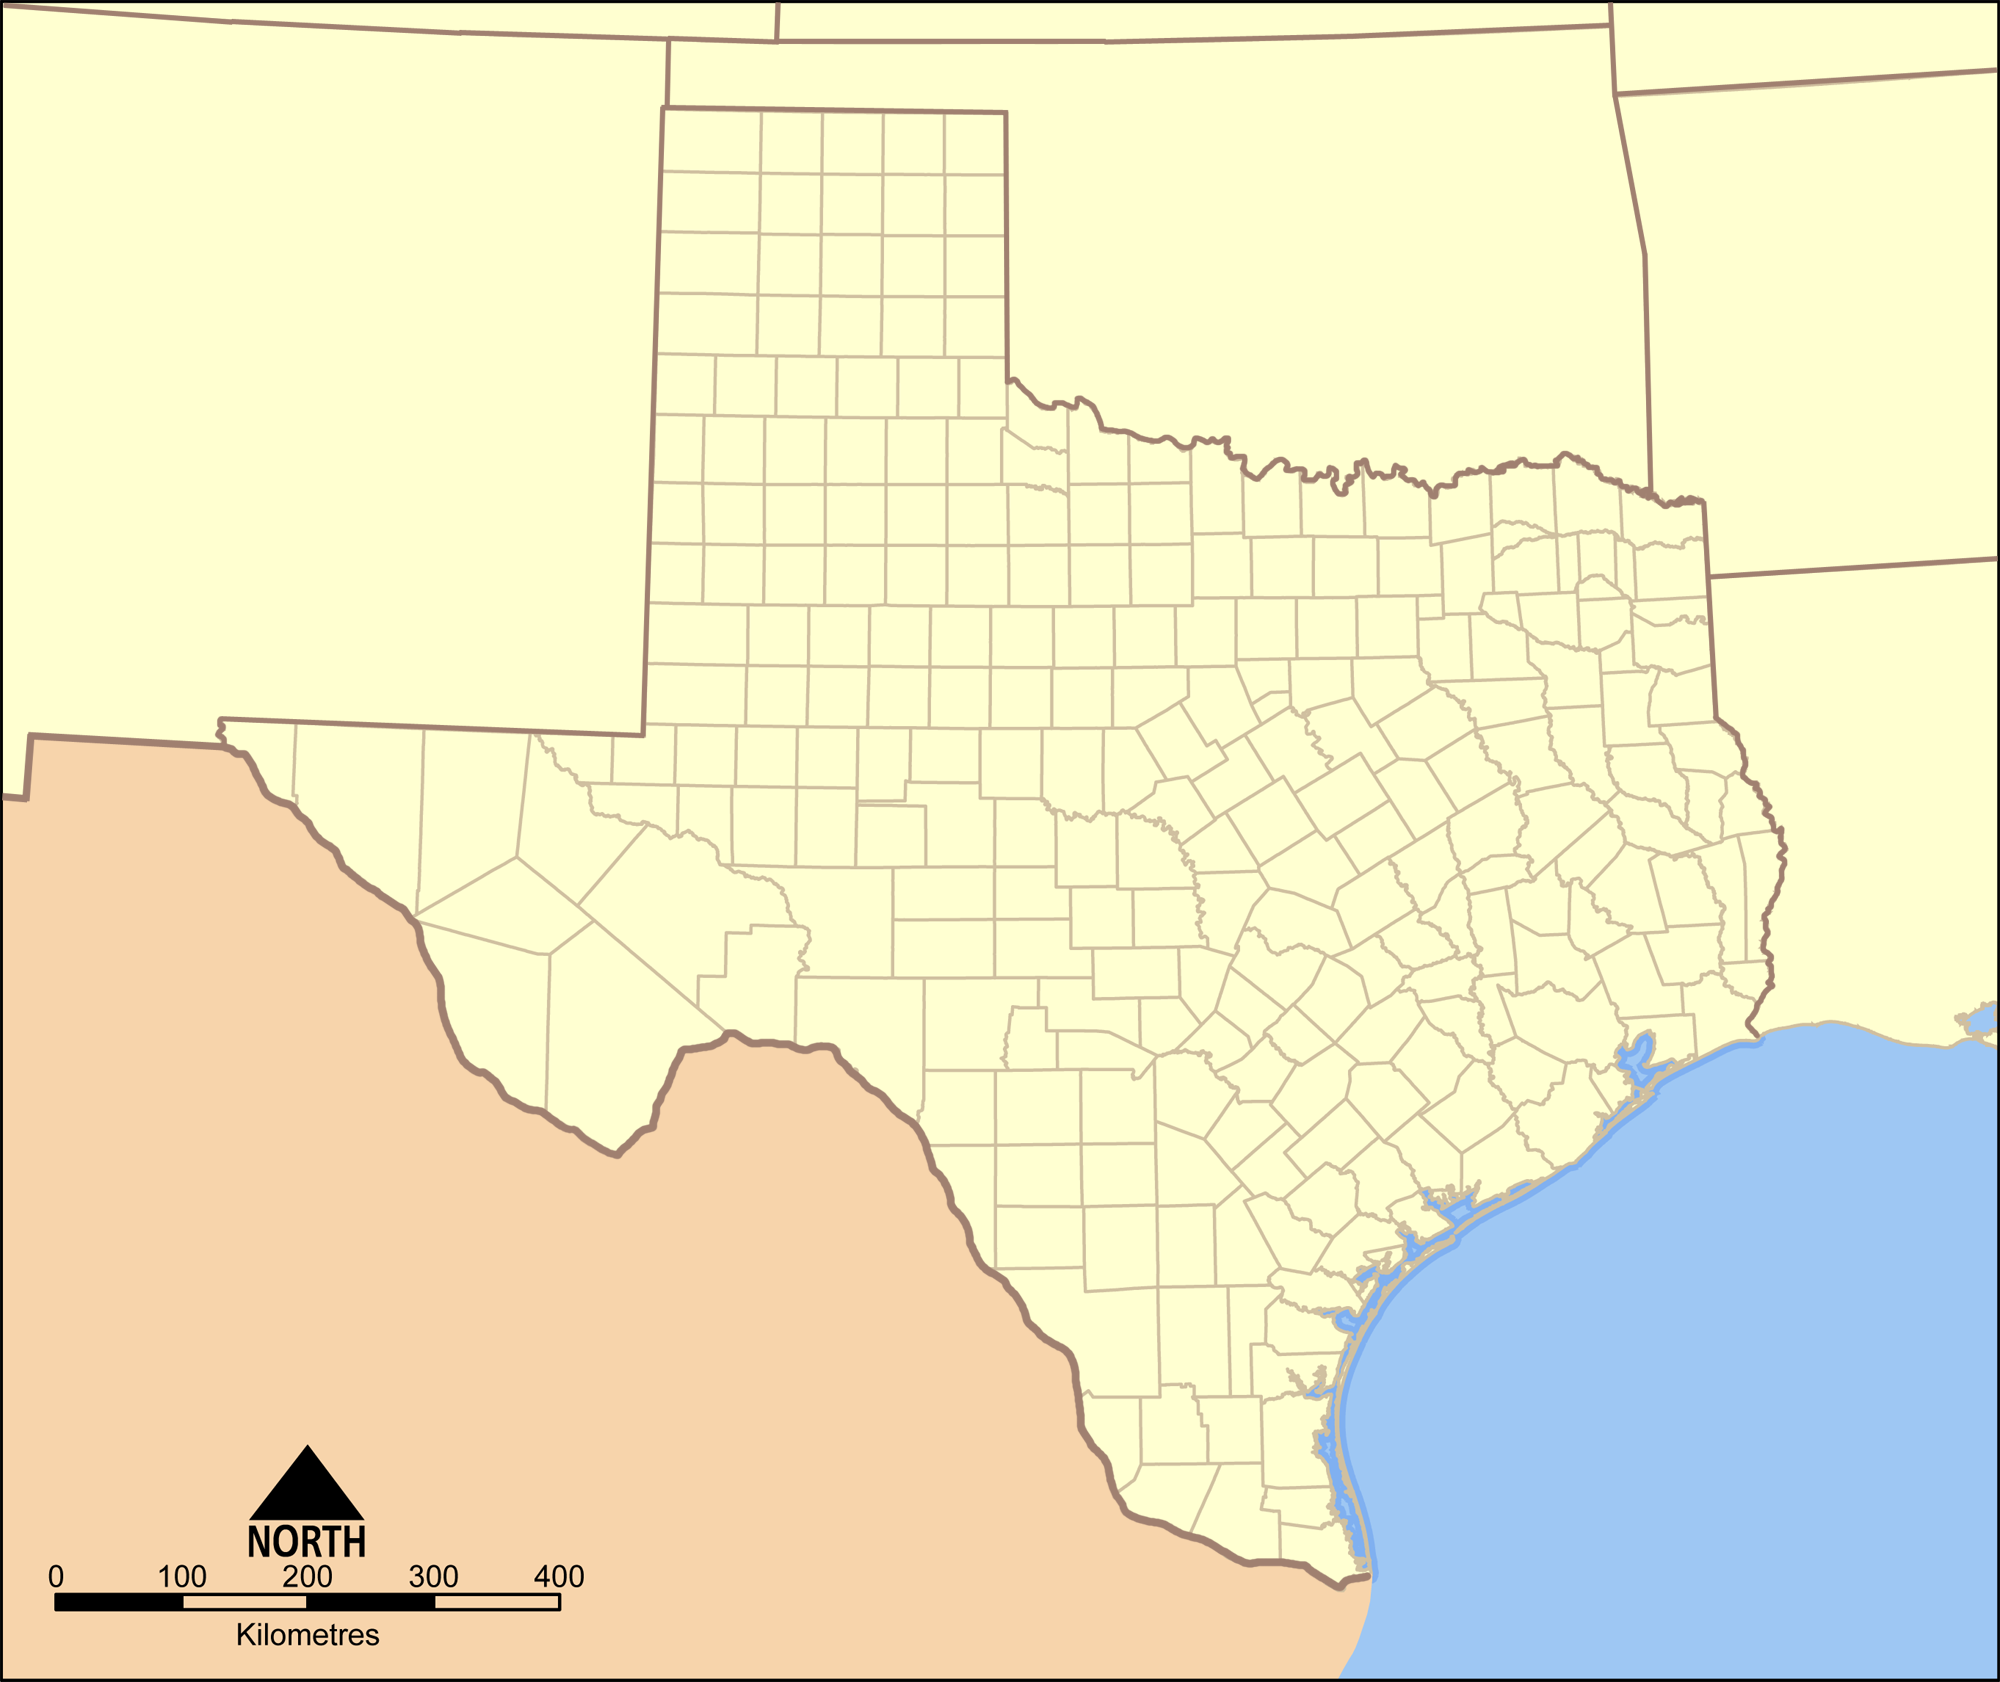 File:Texas counties blank map.png - Wikipedia